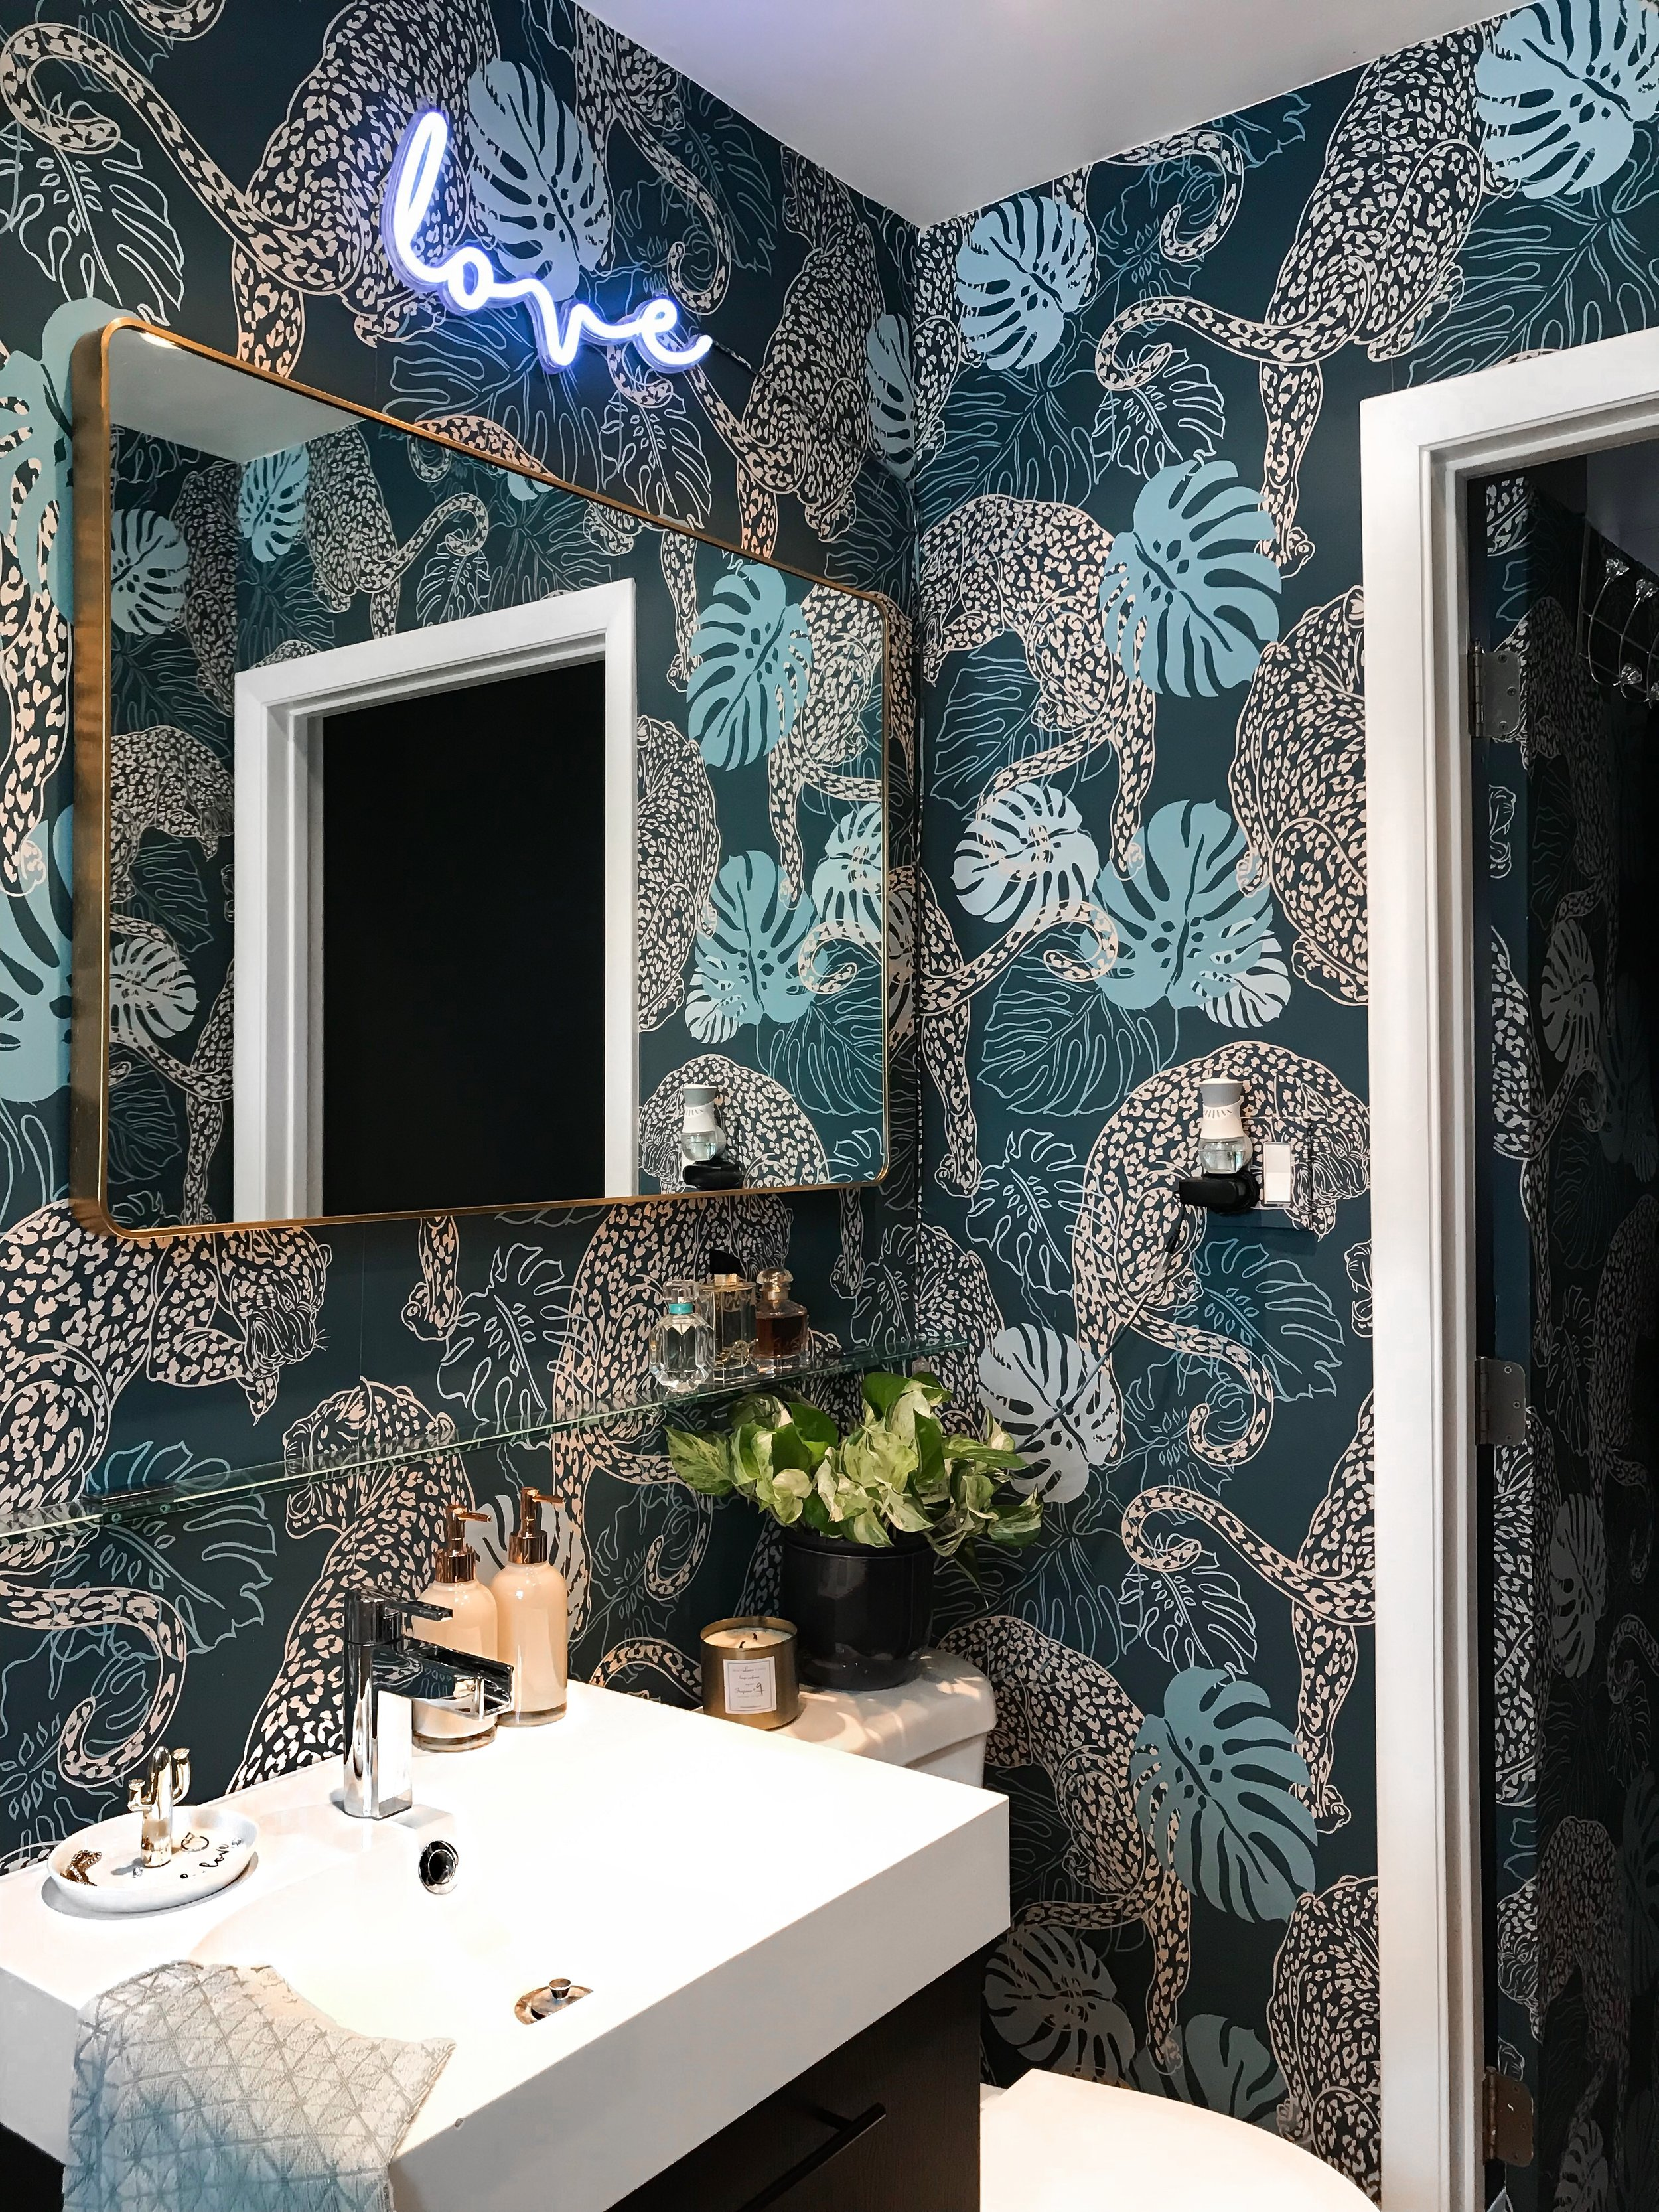 This wallpaper is a showstopper! Its bold and inviting.